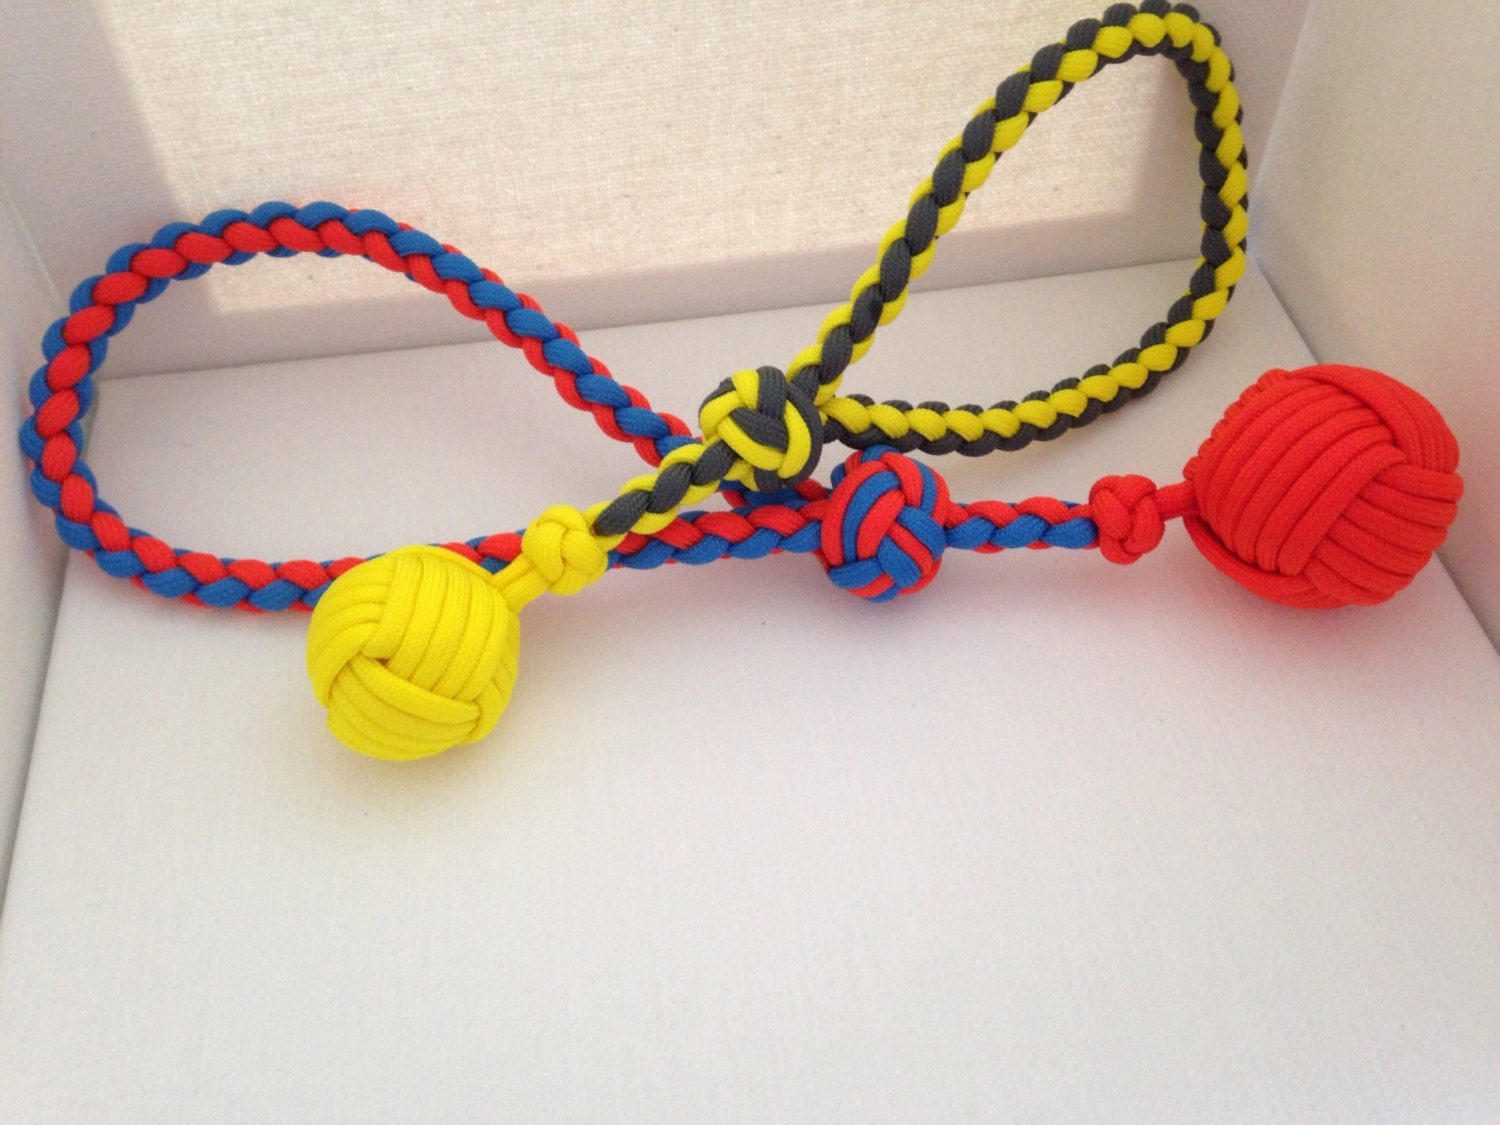 How To Make Dog Toys Out Of Paracord